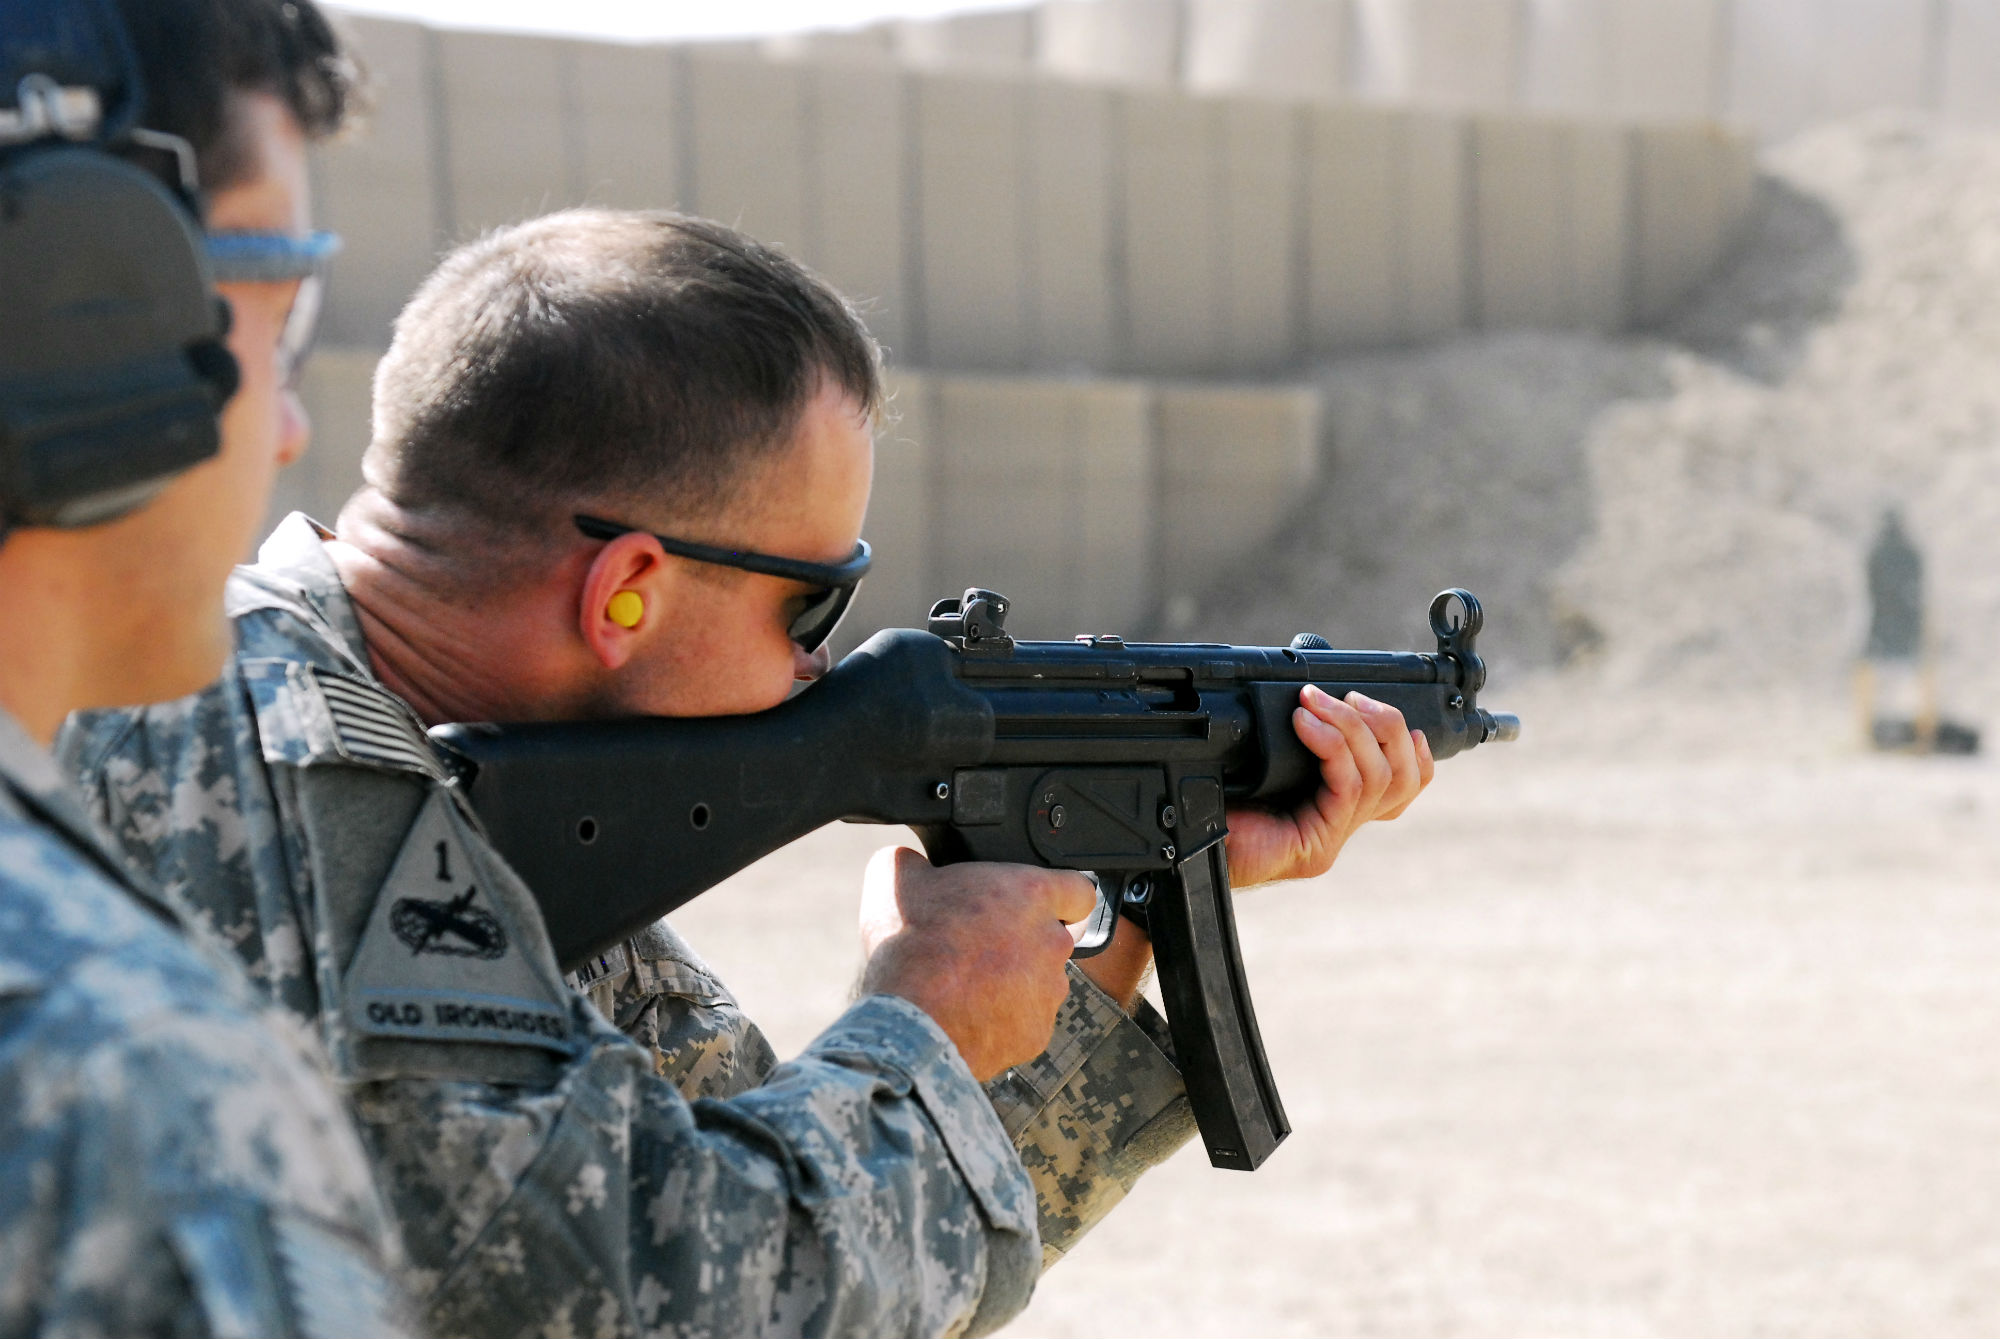 Soldier shooting with the Heckler and Koch MP5s